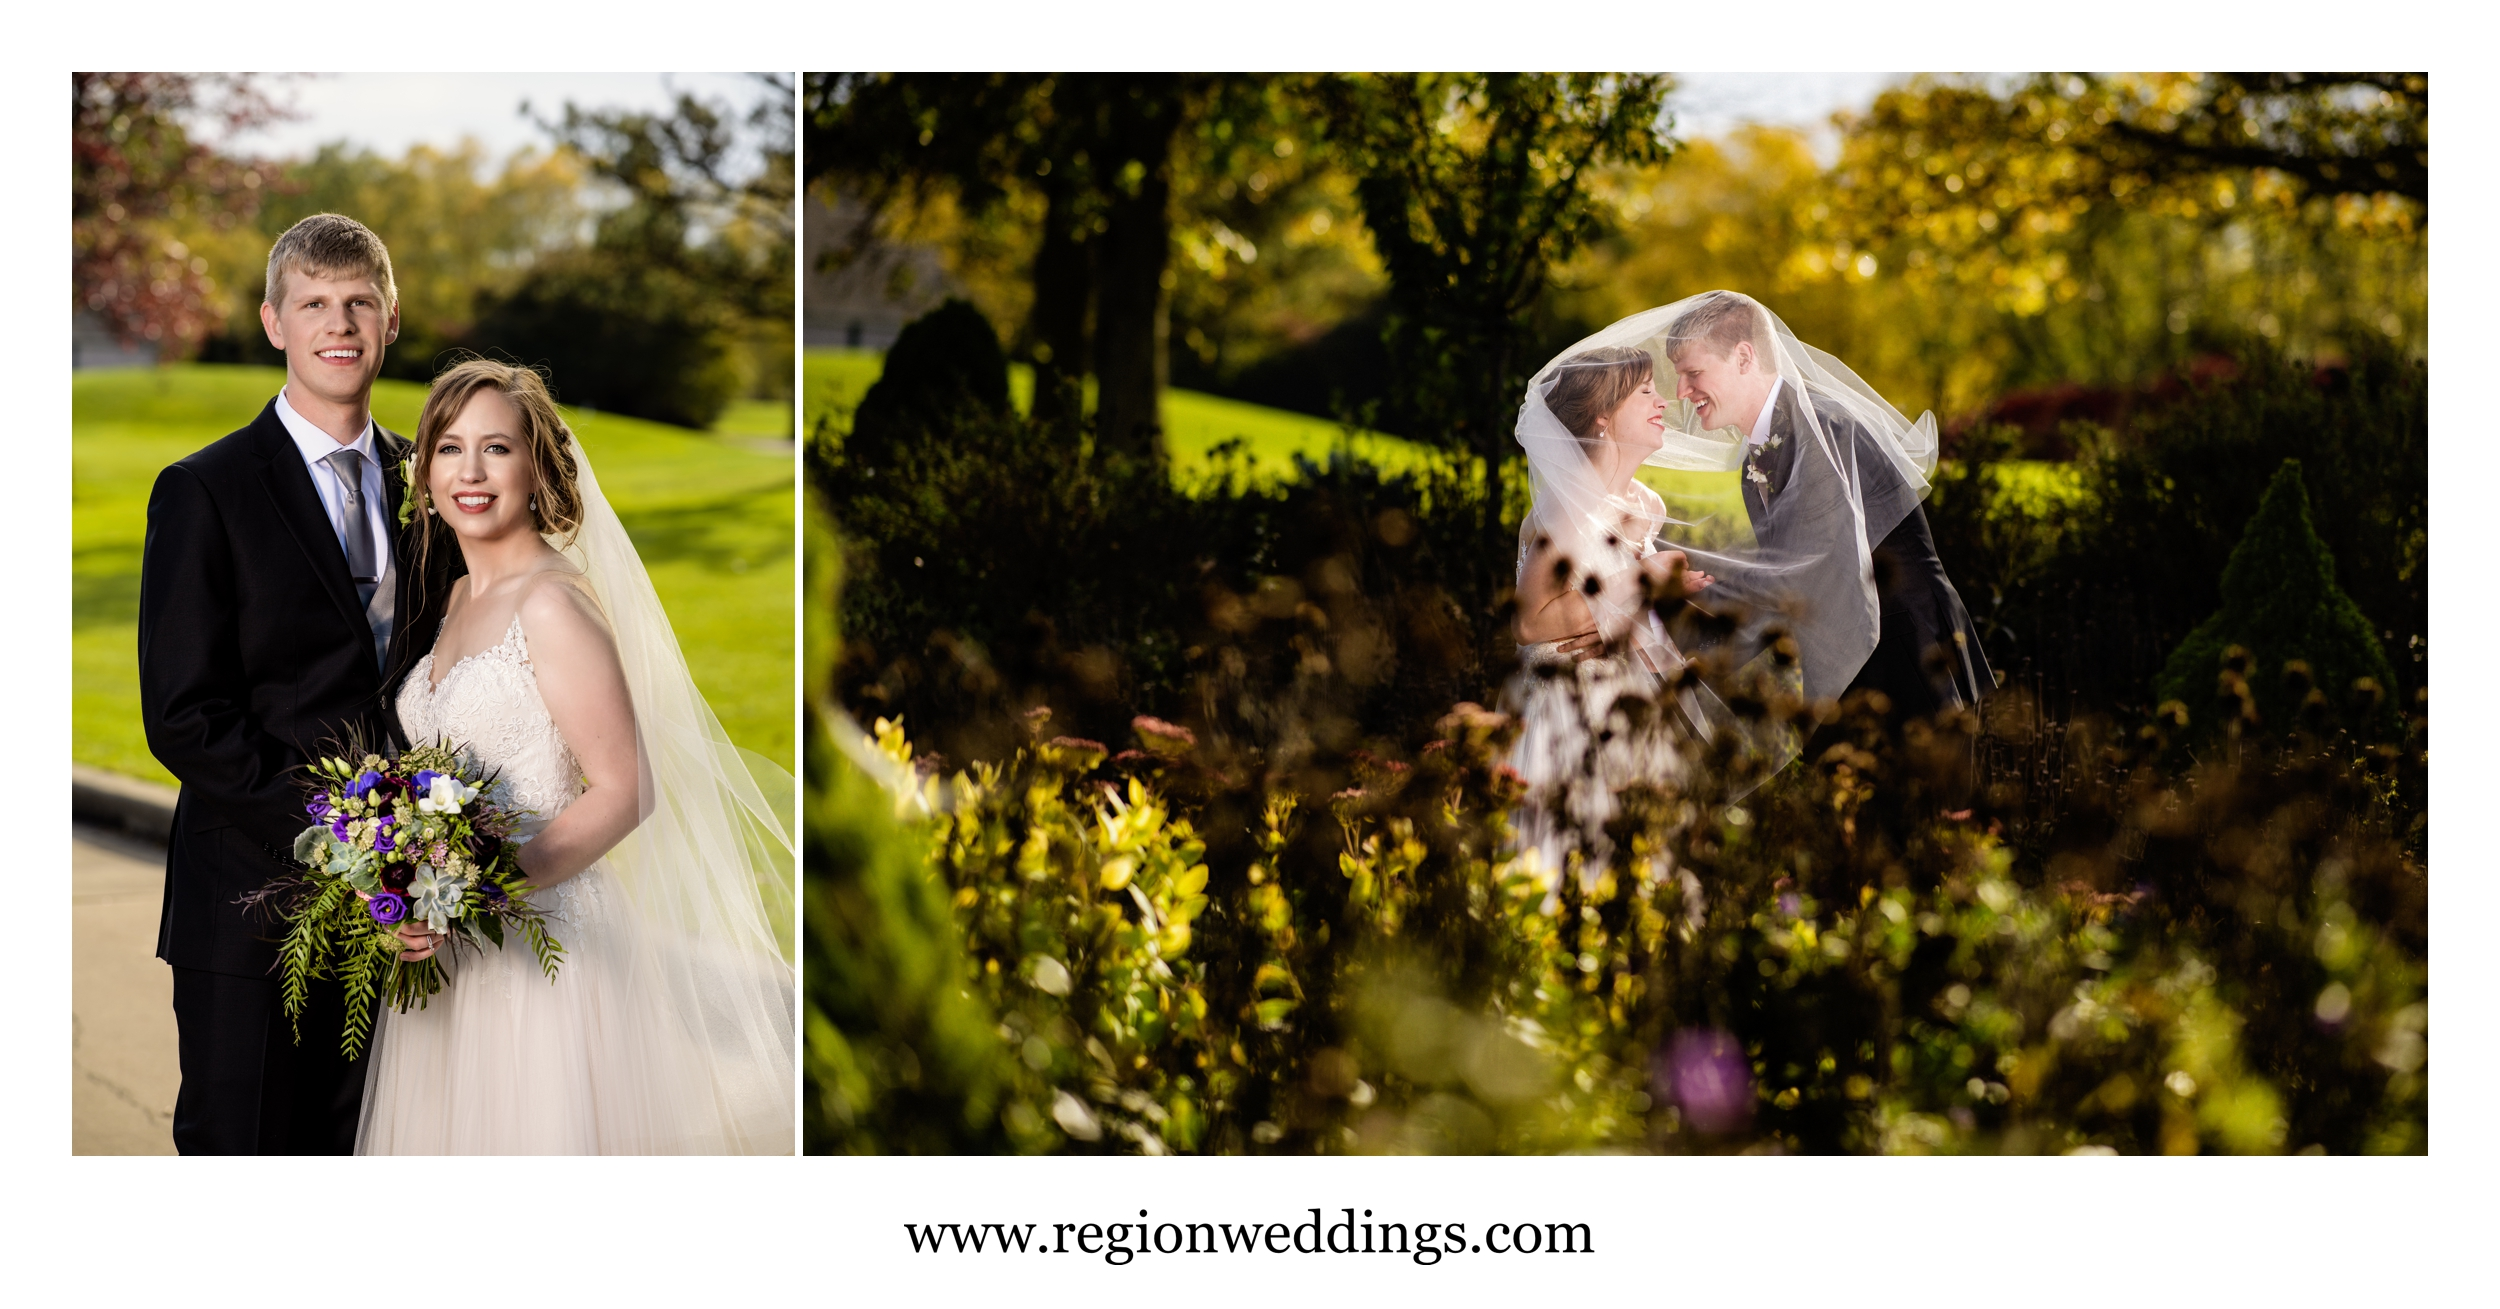 Bride and groom at their Fall wedding at Sand Creek Country Club.